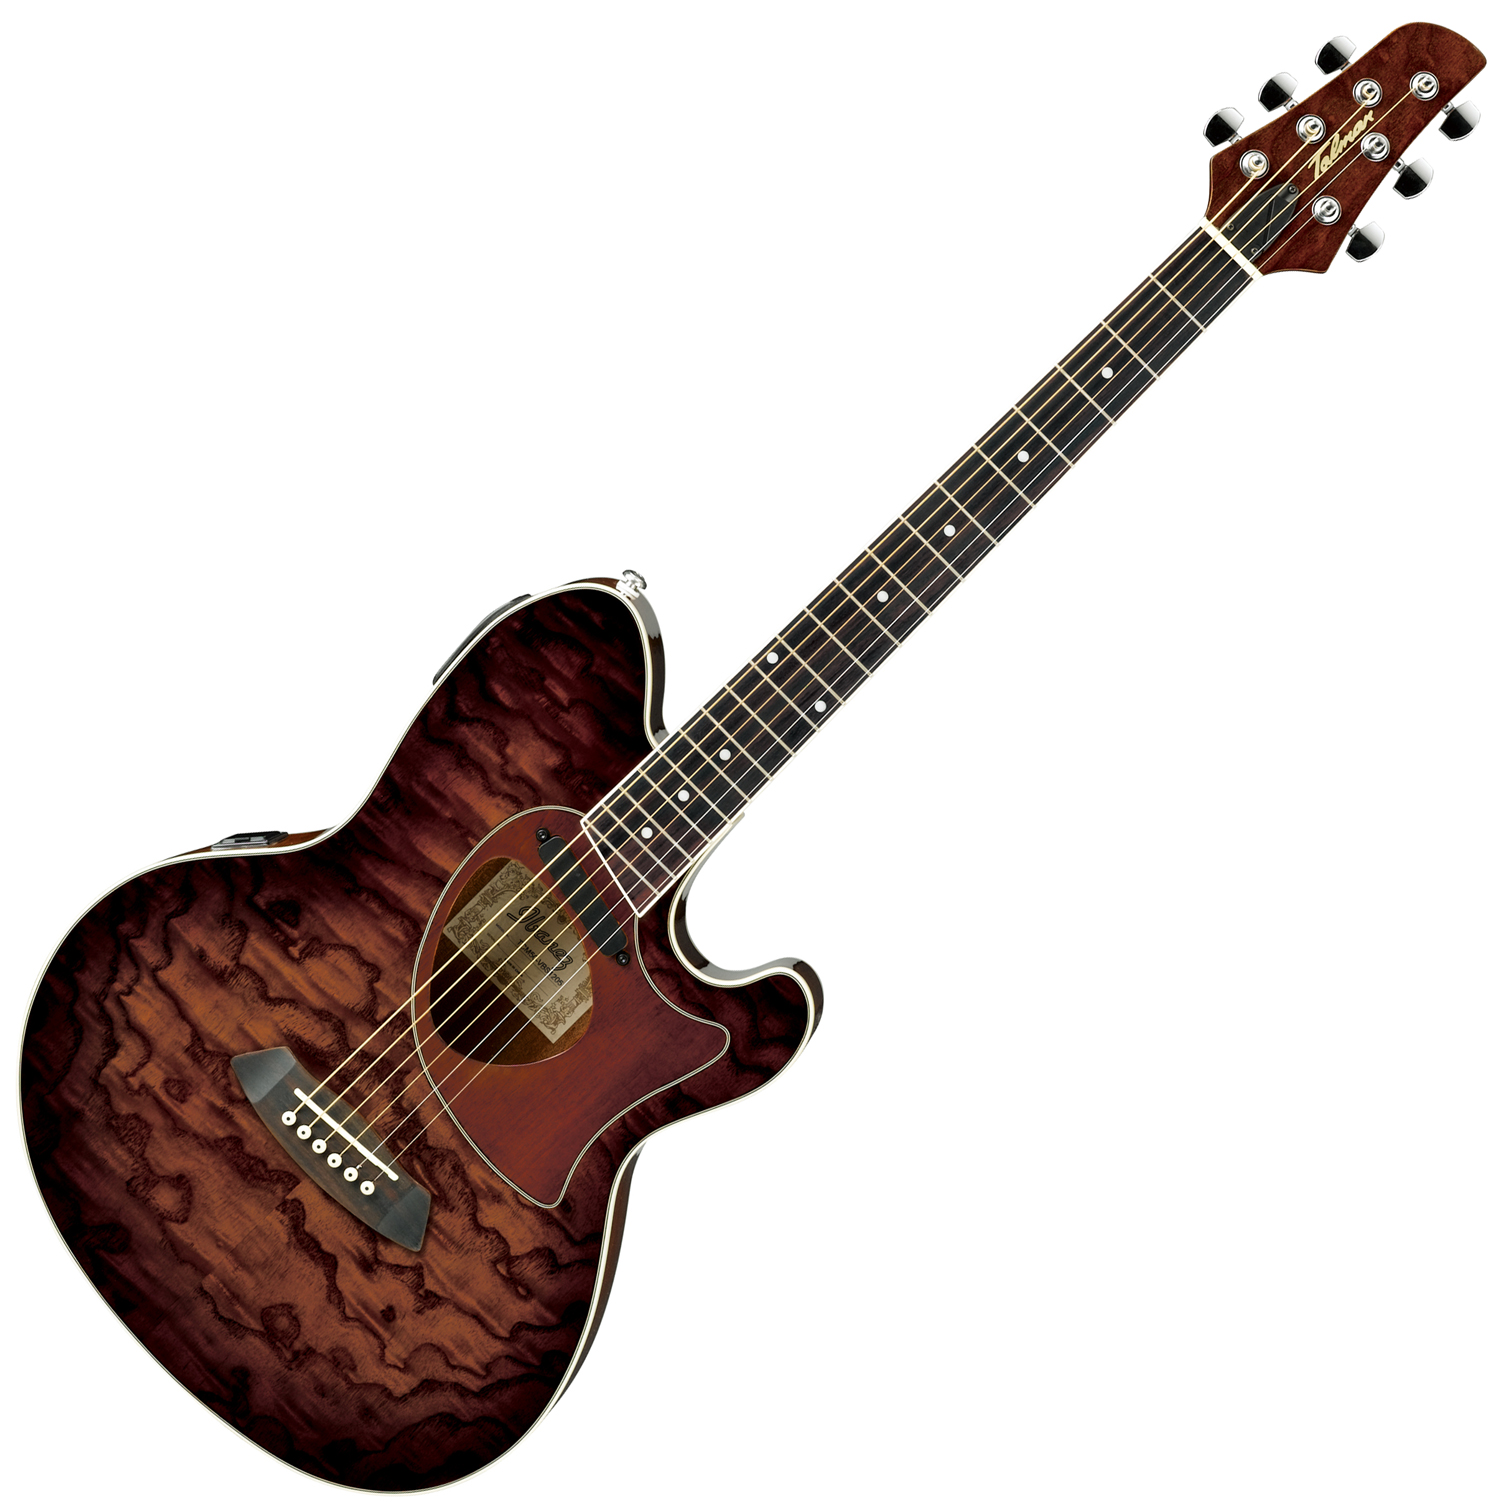 MusicWorks : Guitars - Acoustic-Electric Guitars - Acoustic ... on